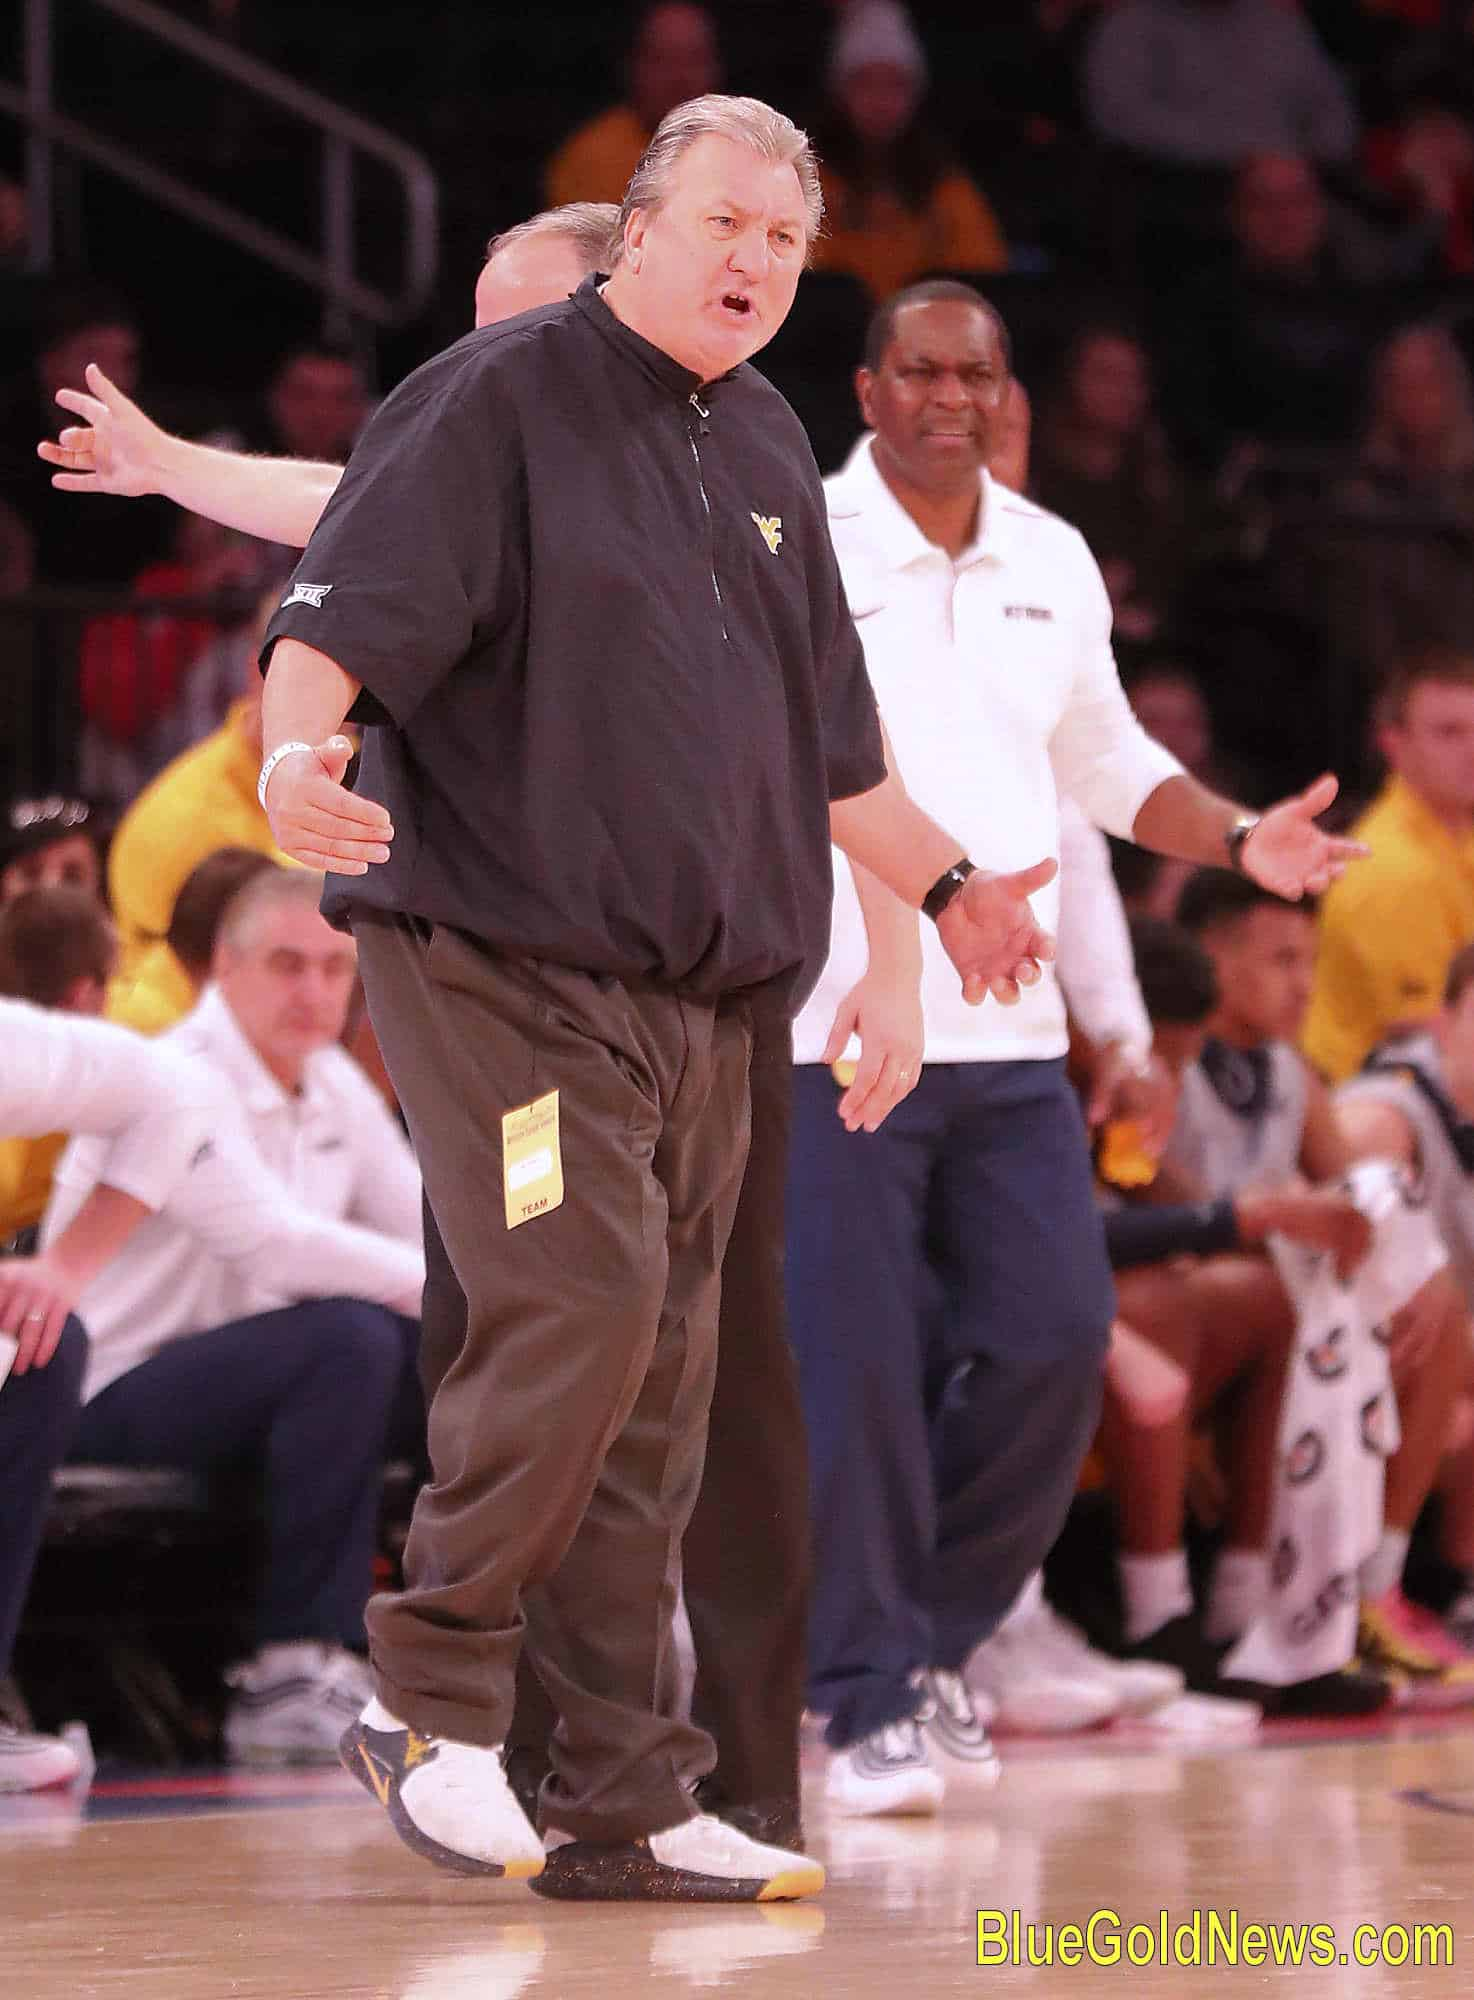 West Virginia coaches Bob Huggins (left) and Larry Harrison (back, right) show equal amounts of frustration and vexation after another WVU turnover